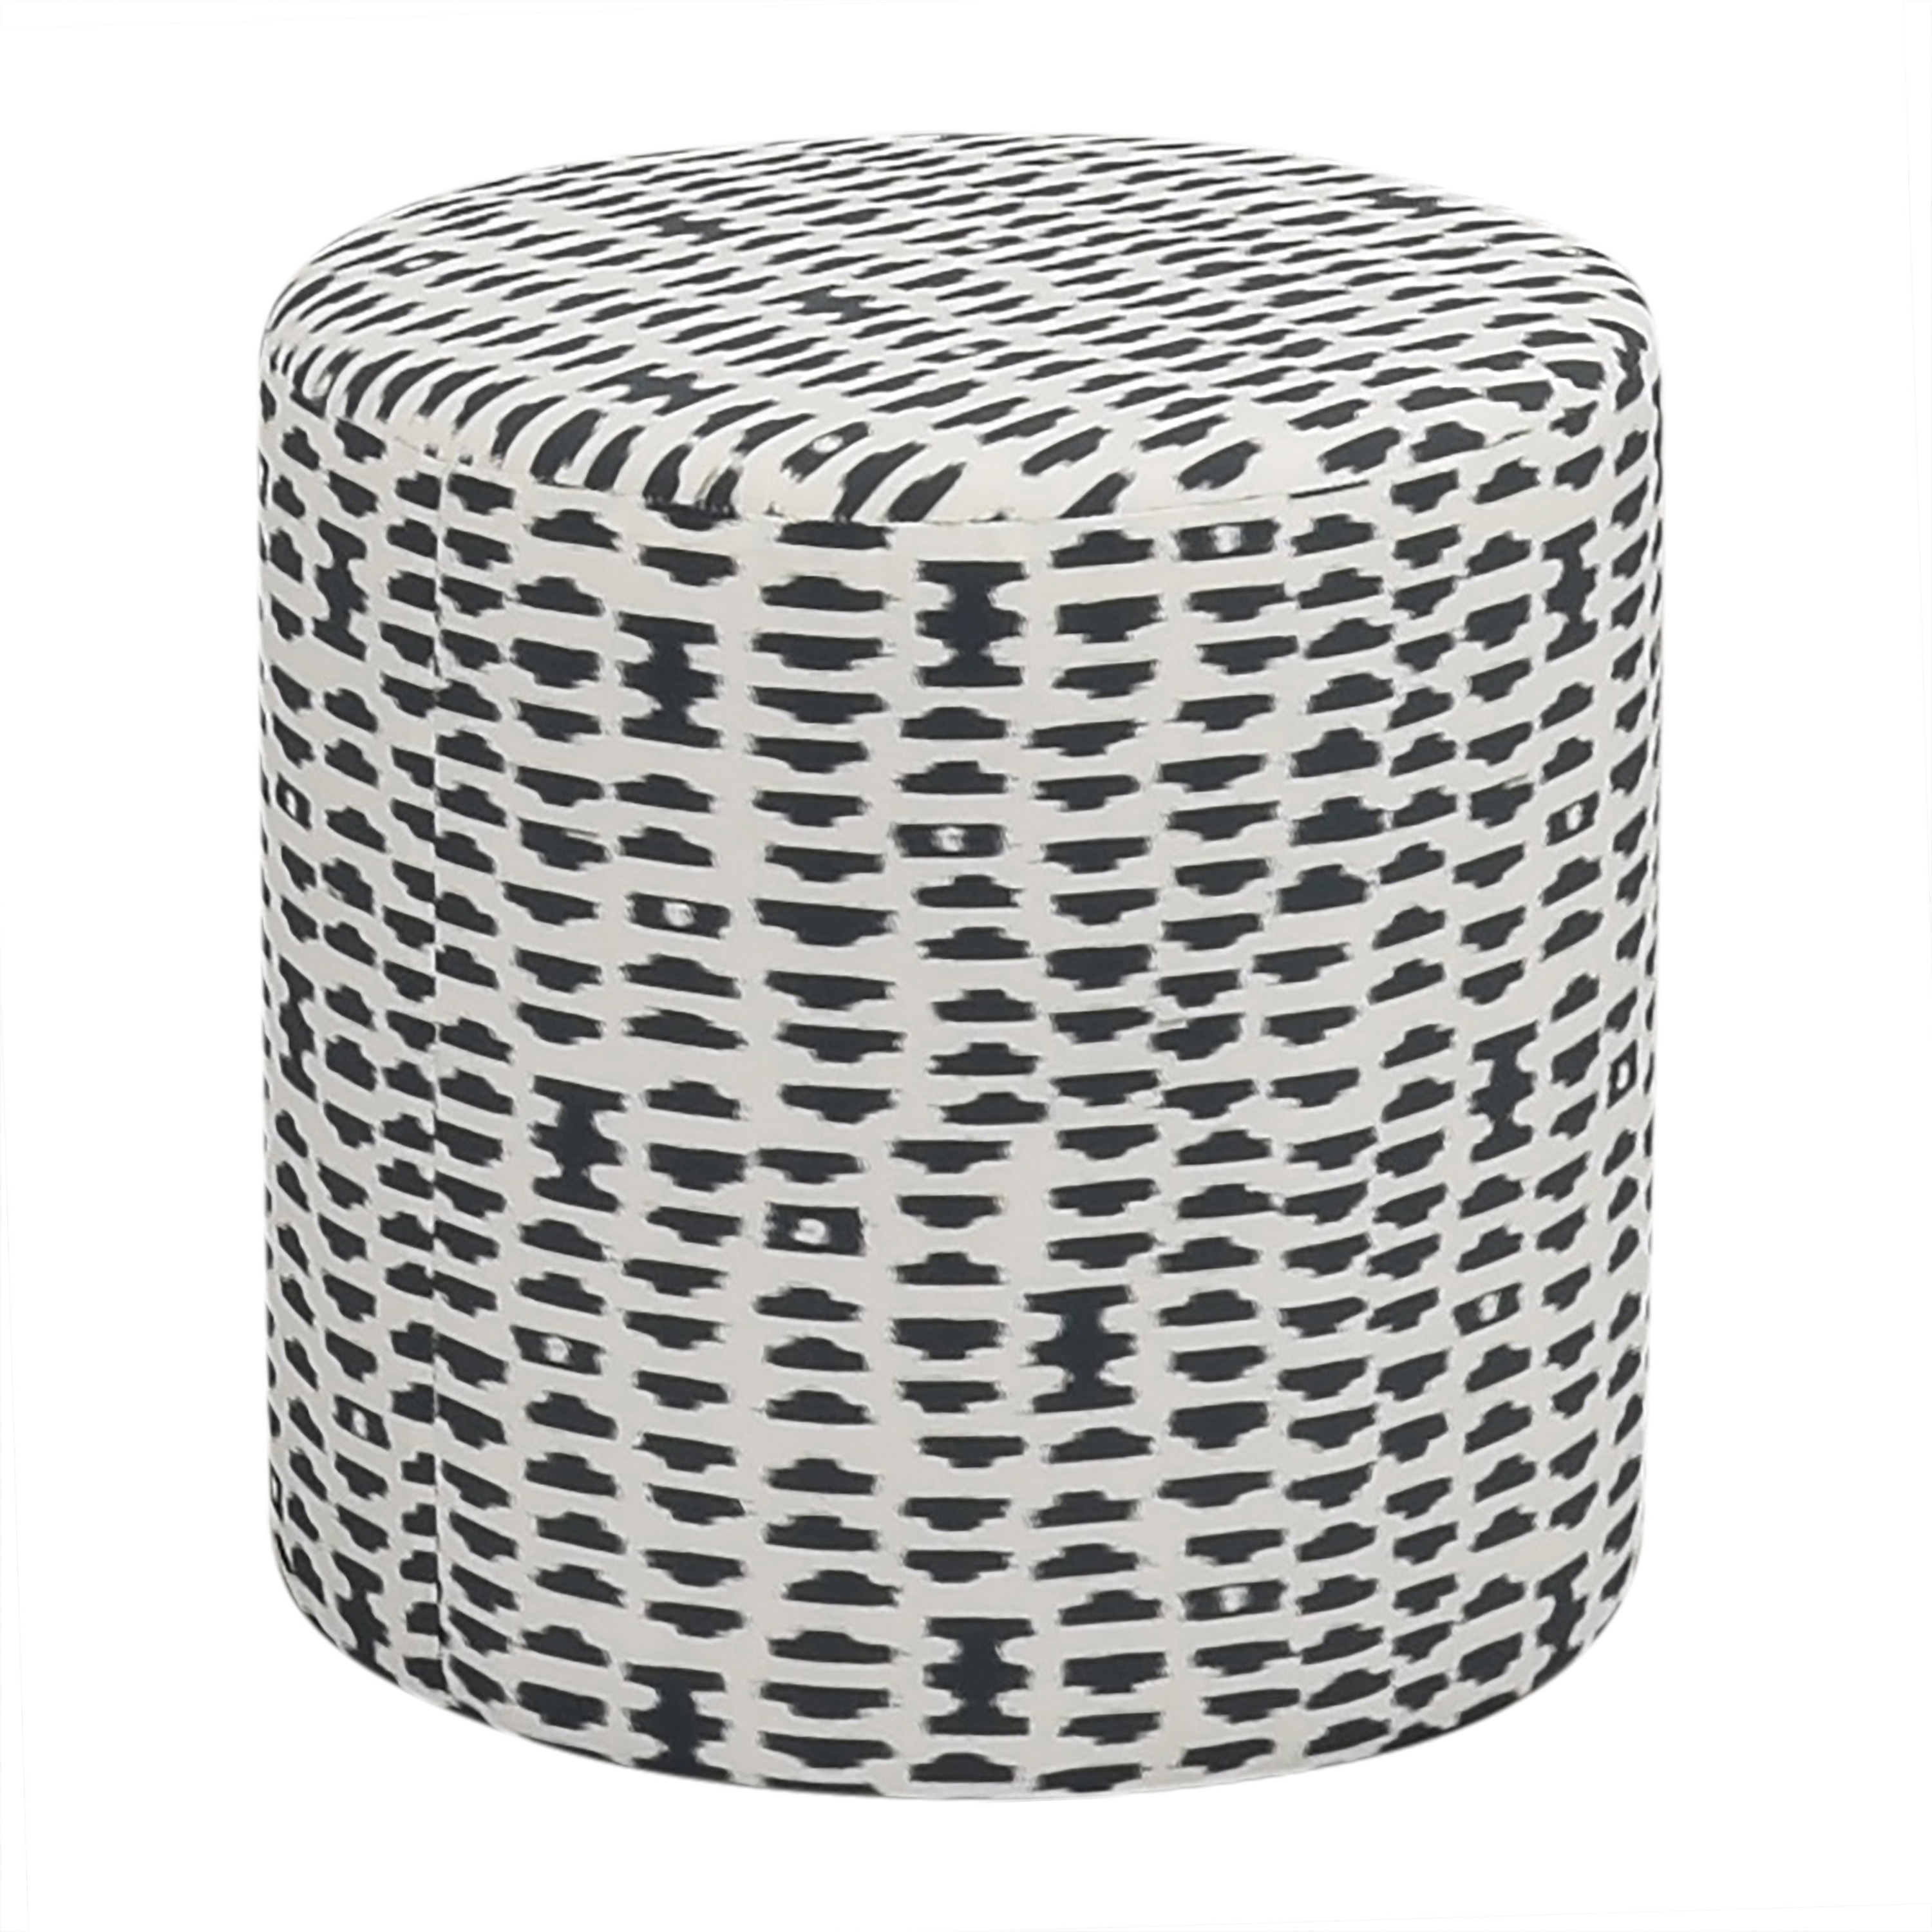 The Inside The Inside Odalisque Drum Ottoman Ottomans